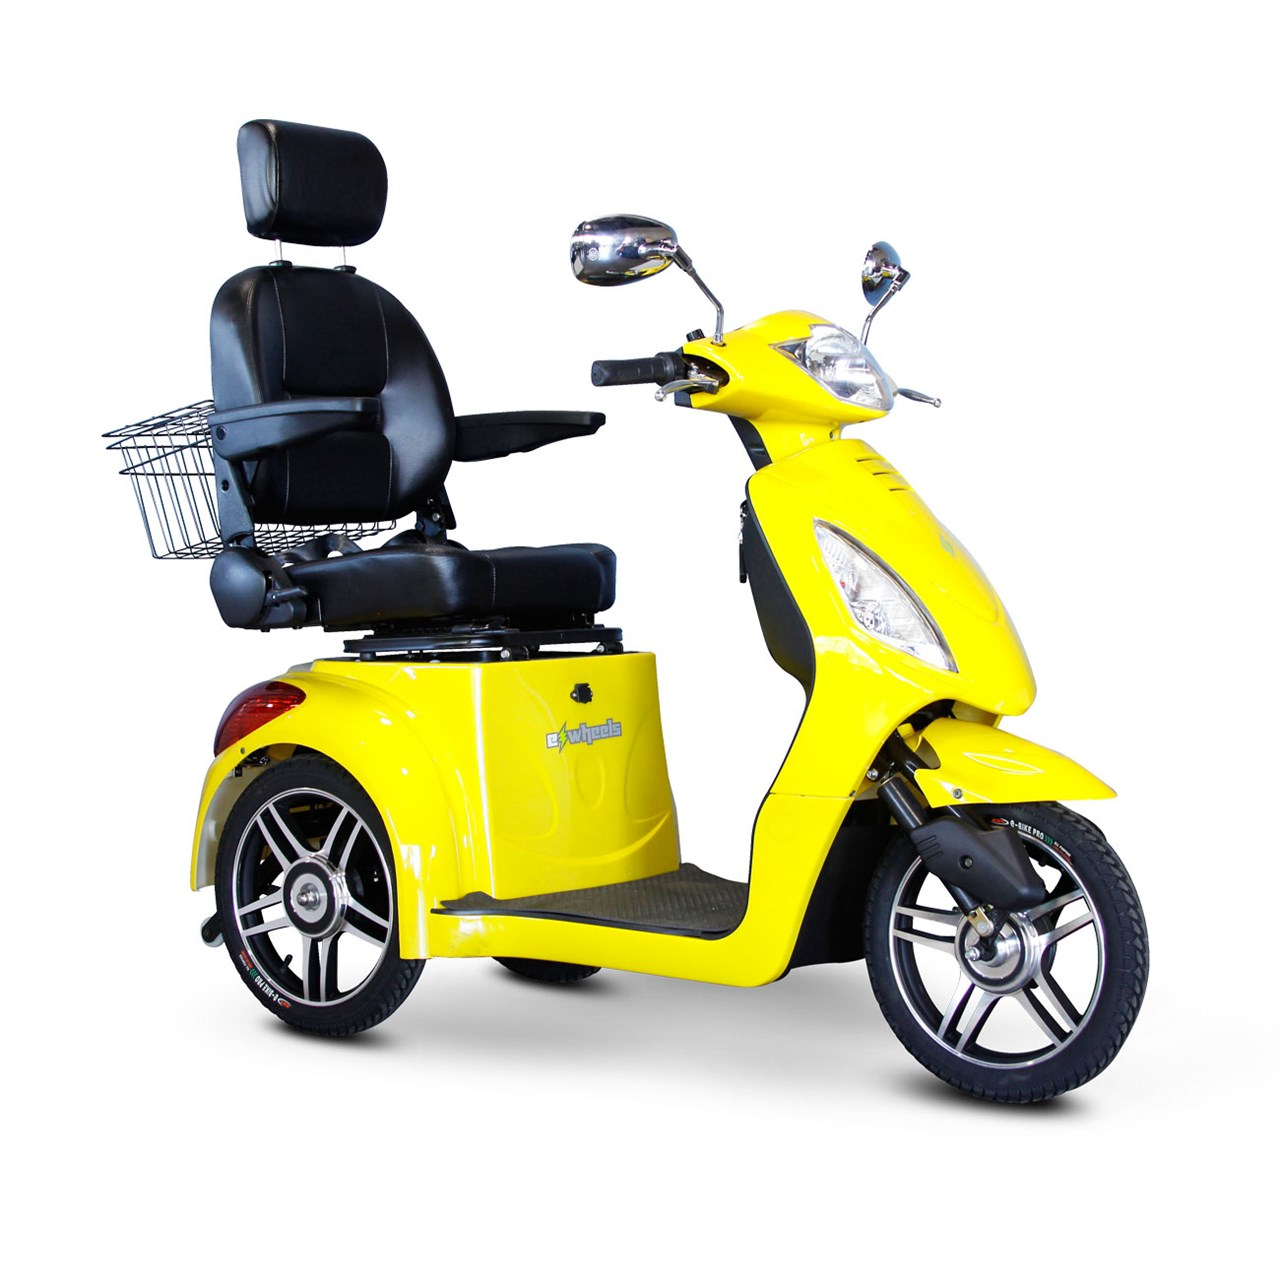 Maxiaids e wheels ew 36 3 wheel electric senior mobility scooter yellow for Mobility scooters